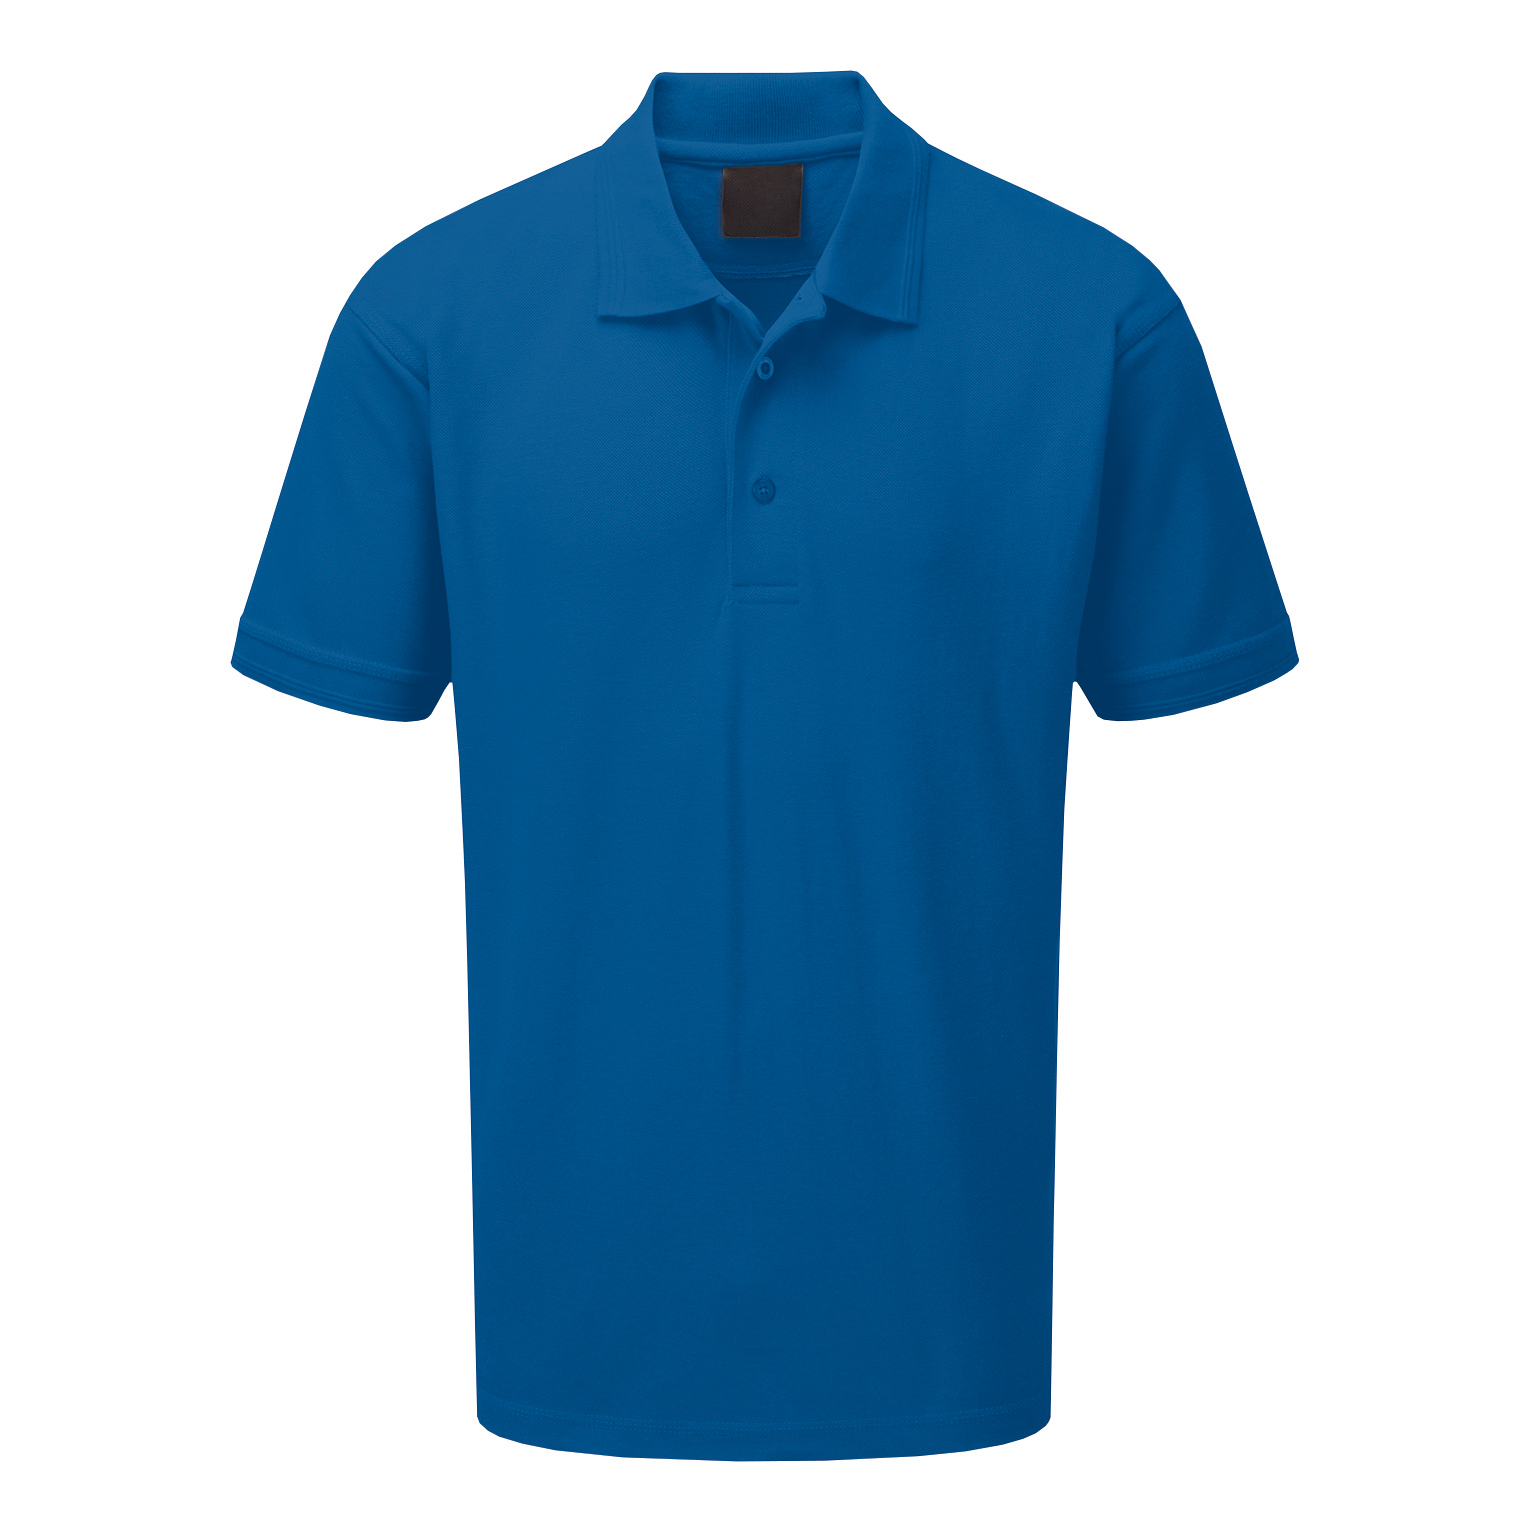 Premium Polo Triple Stitched 220gsm Size Large Royal Blue